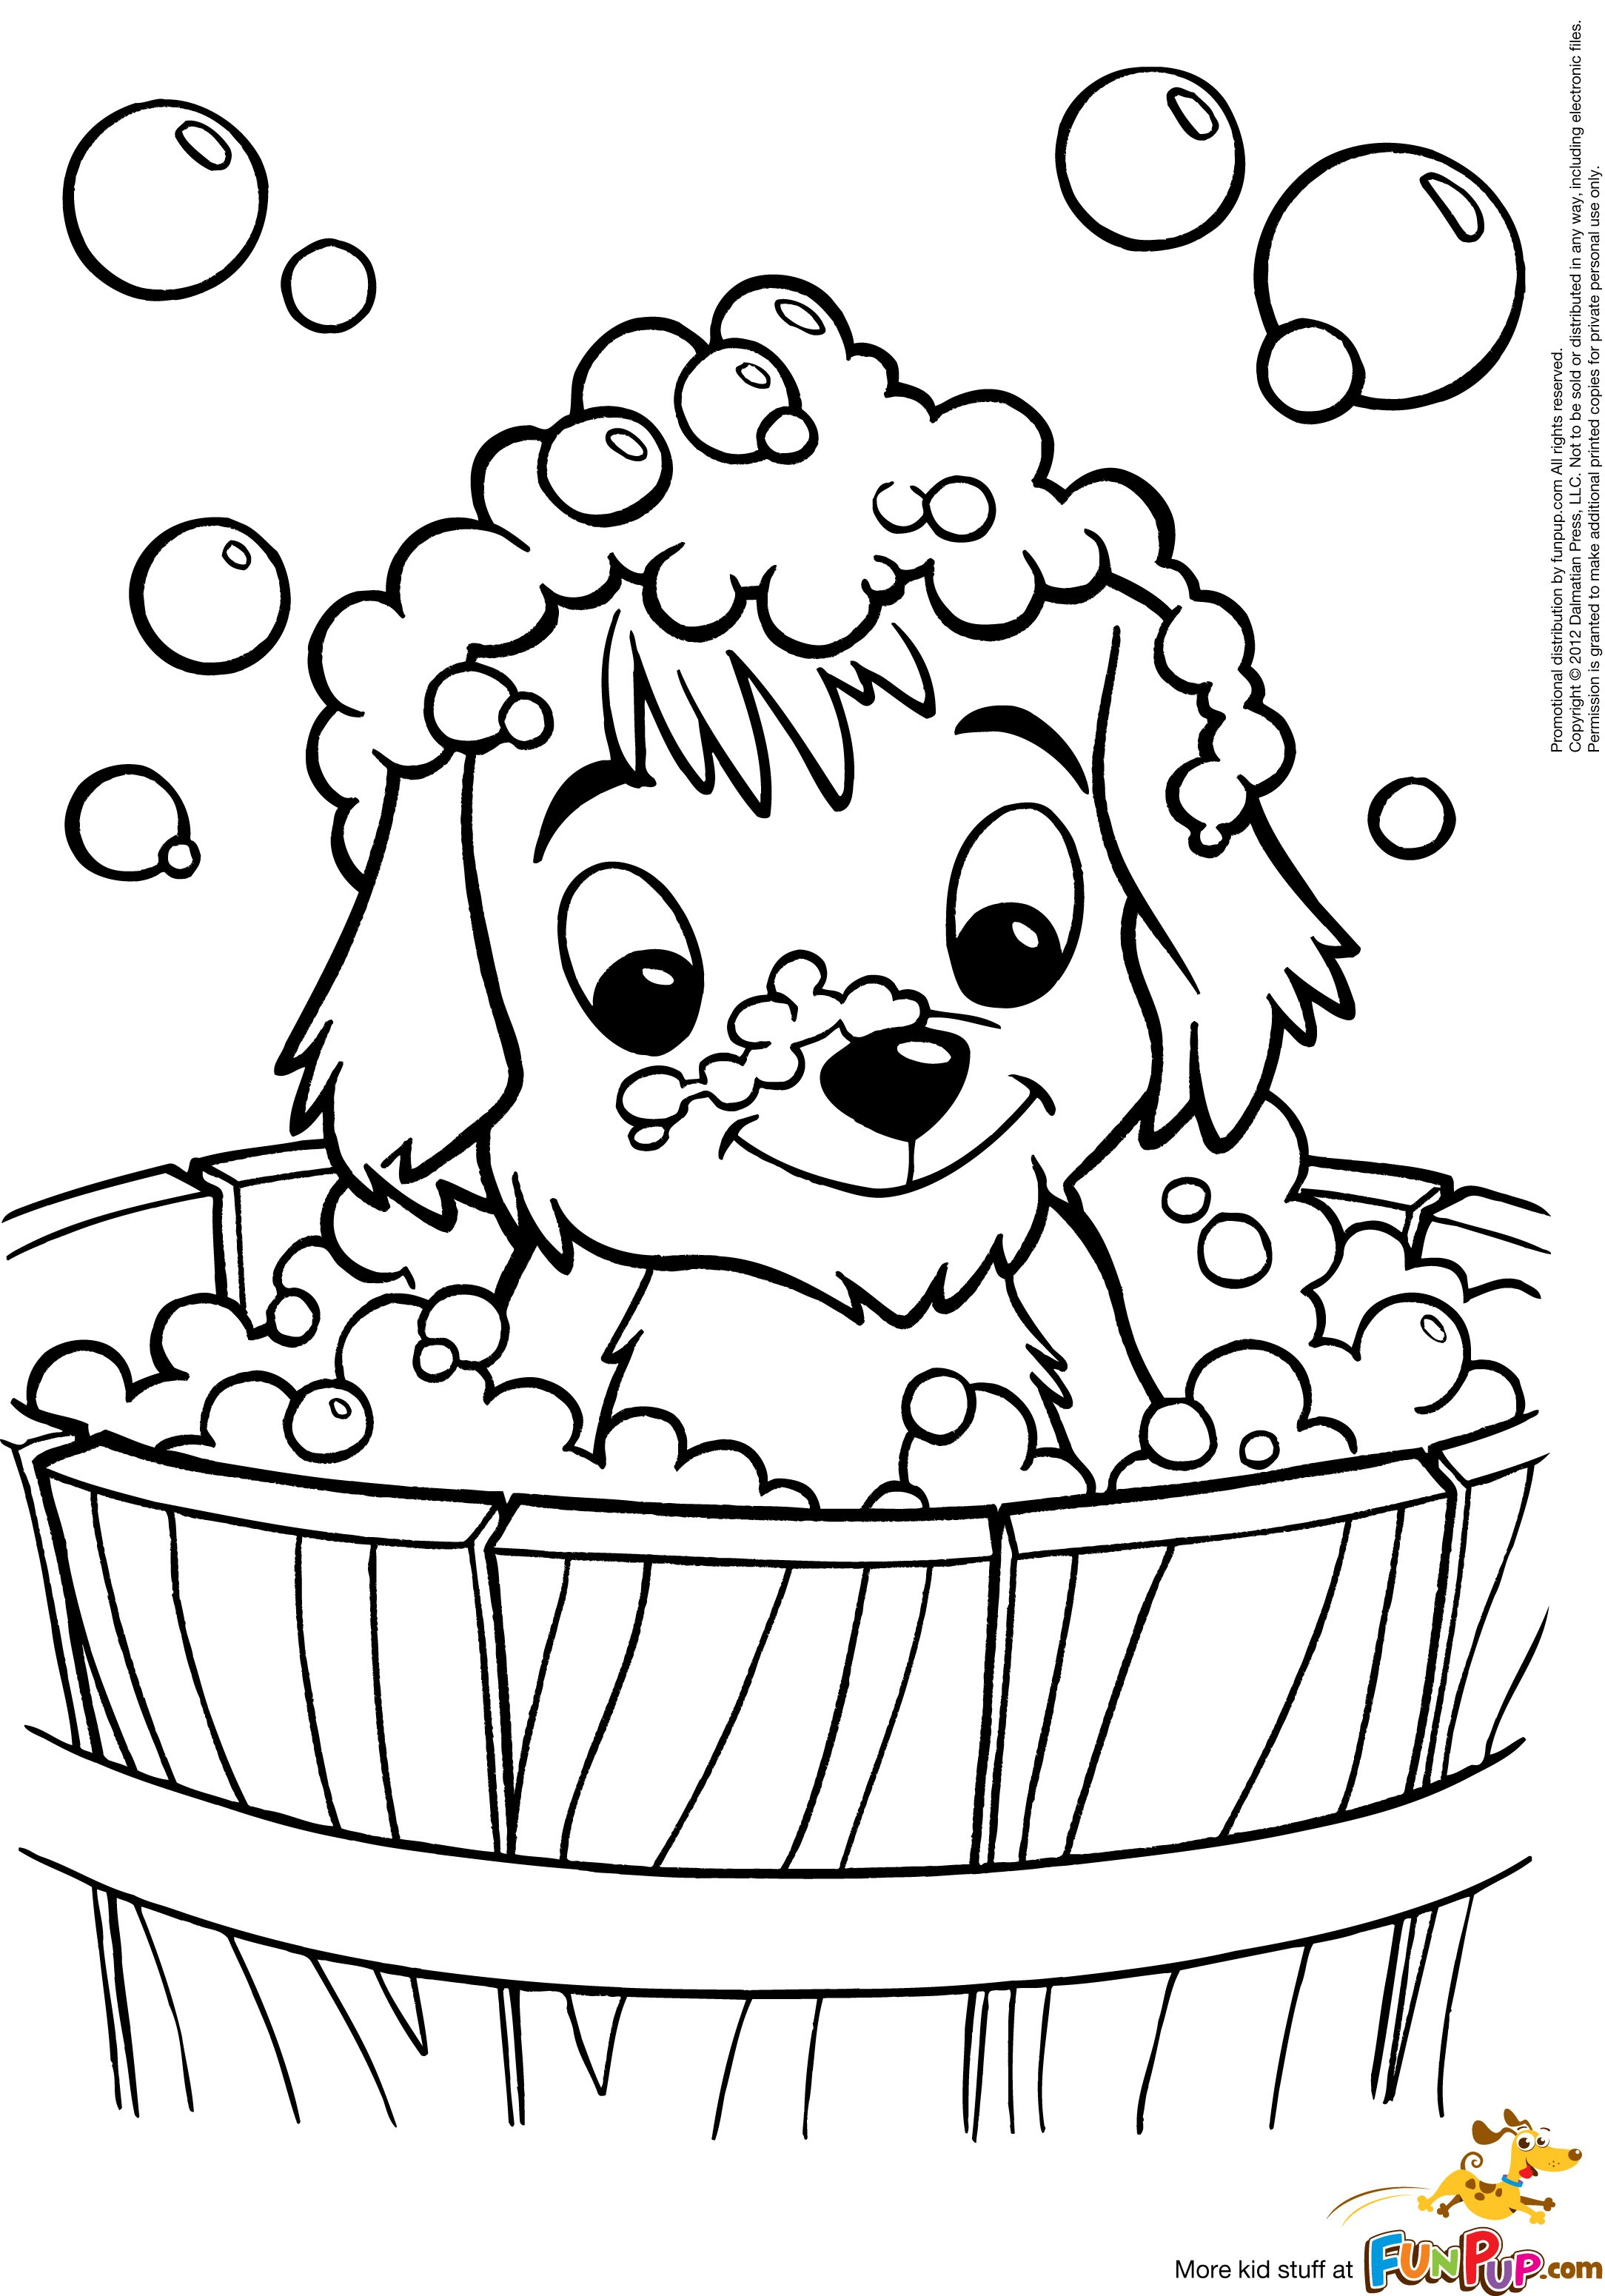 Puppy Coloring Pages For Adults at GetDrawings | Free download